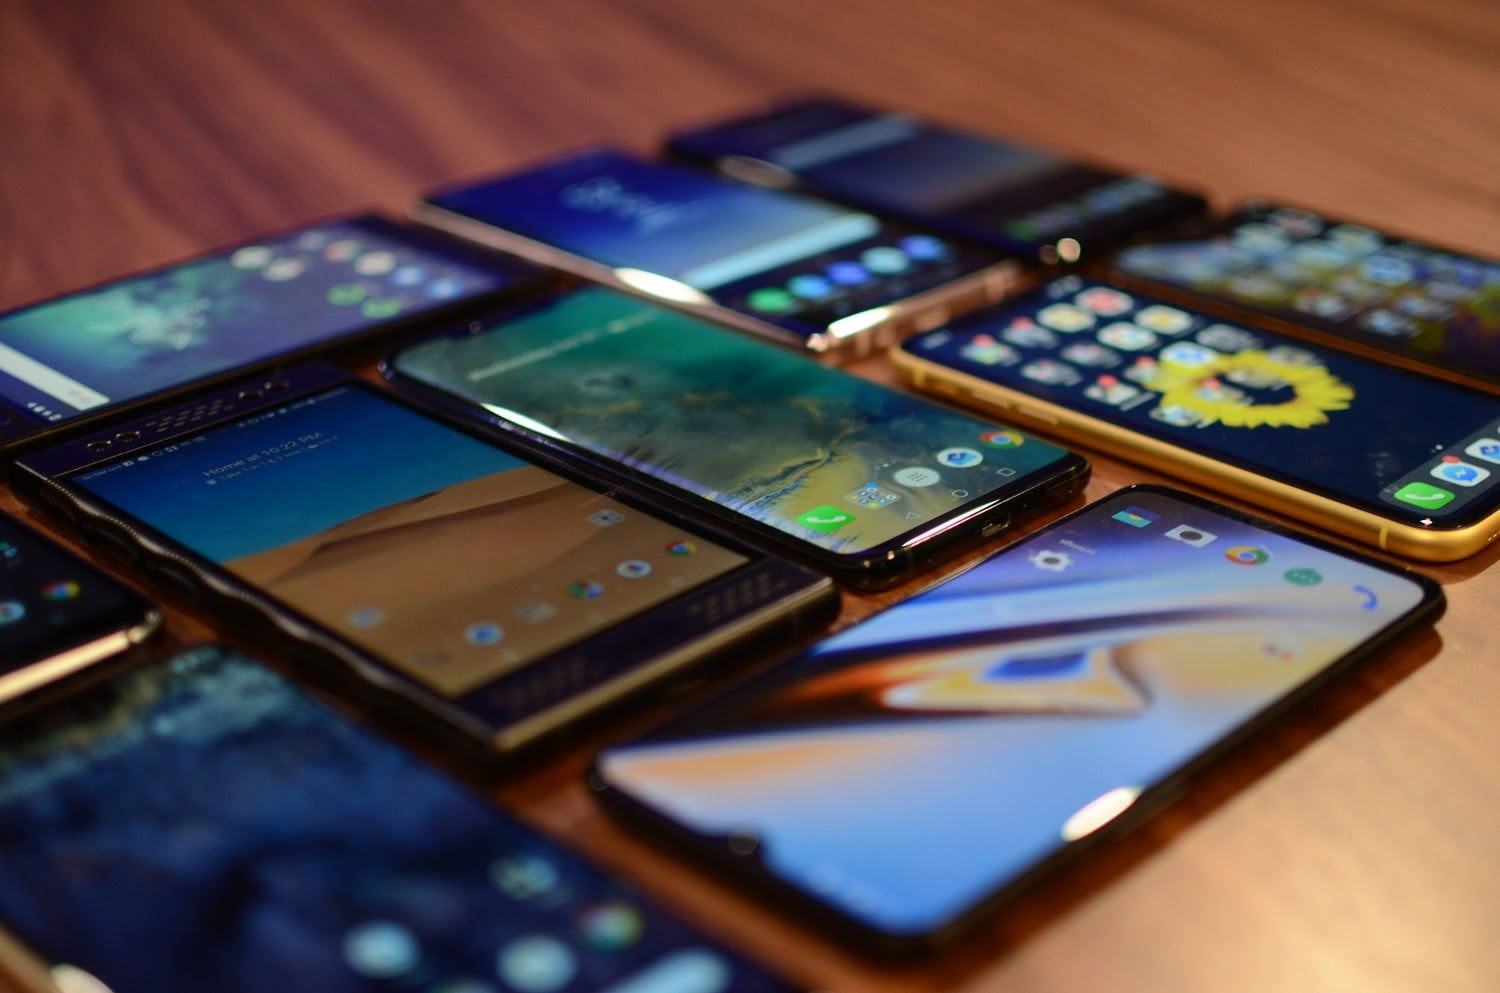 Ten Top Trending Smartphones In The Last Two Weeks